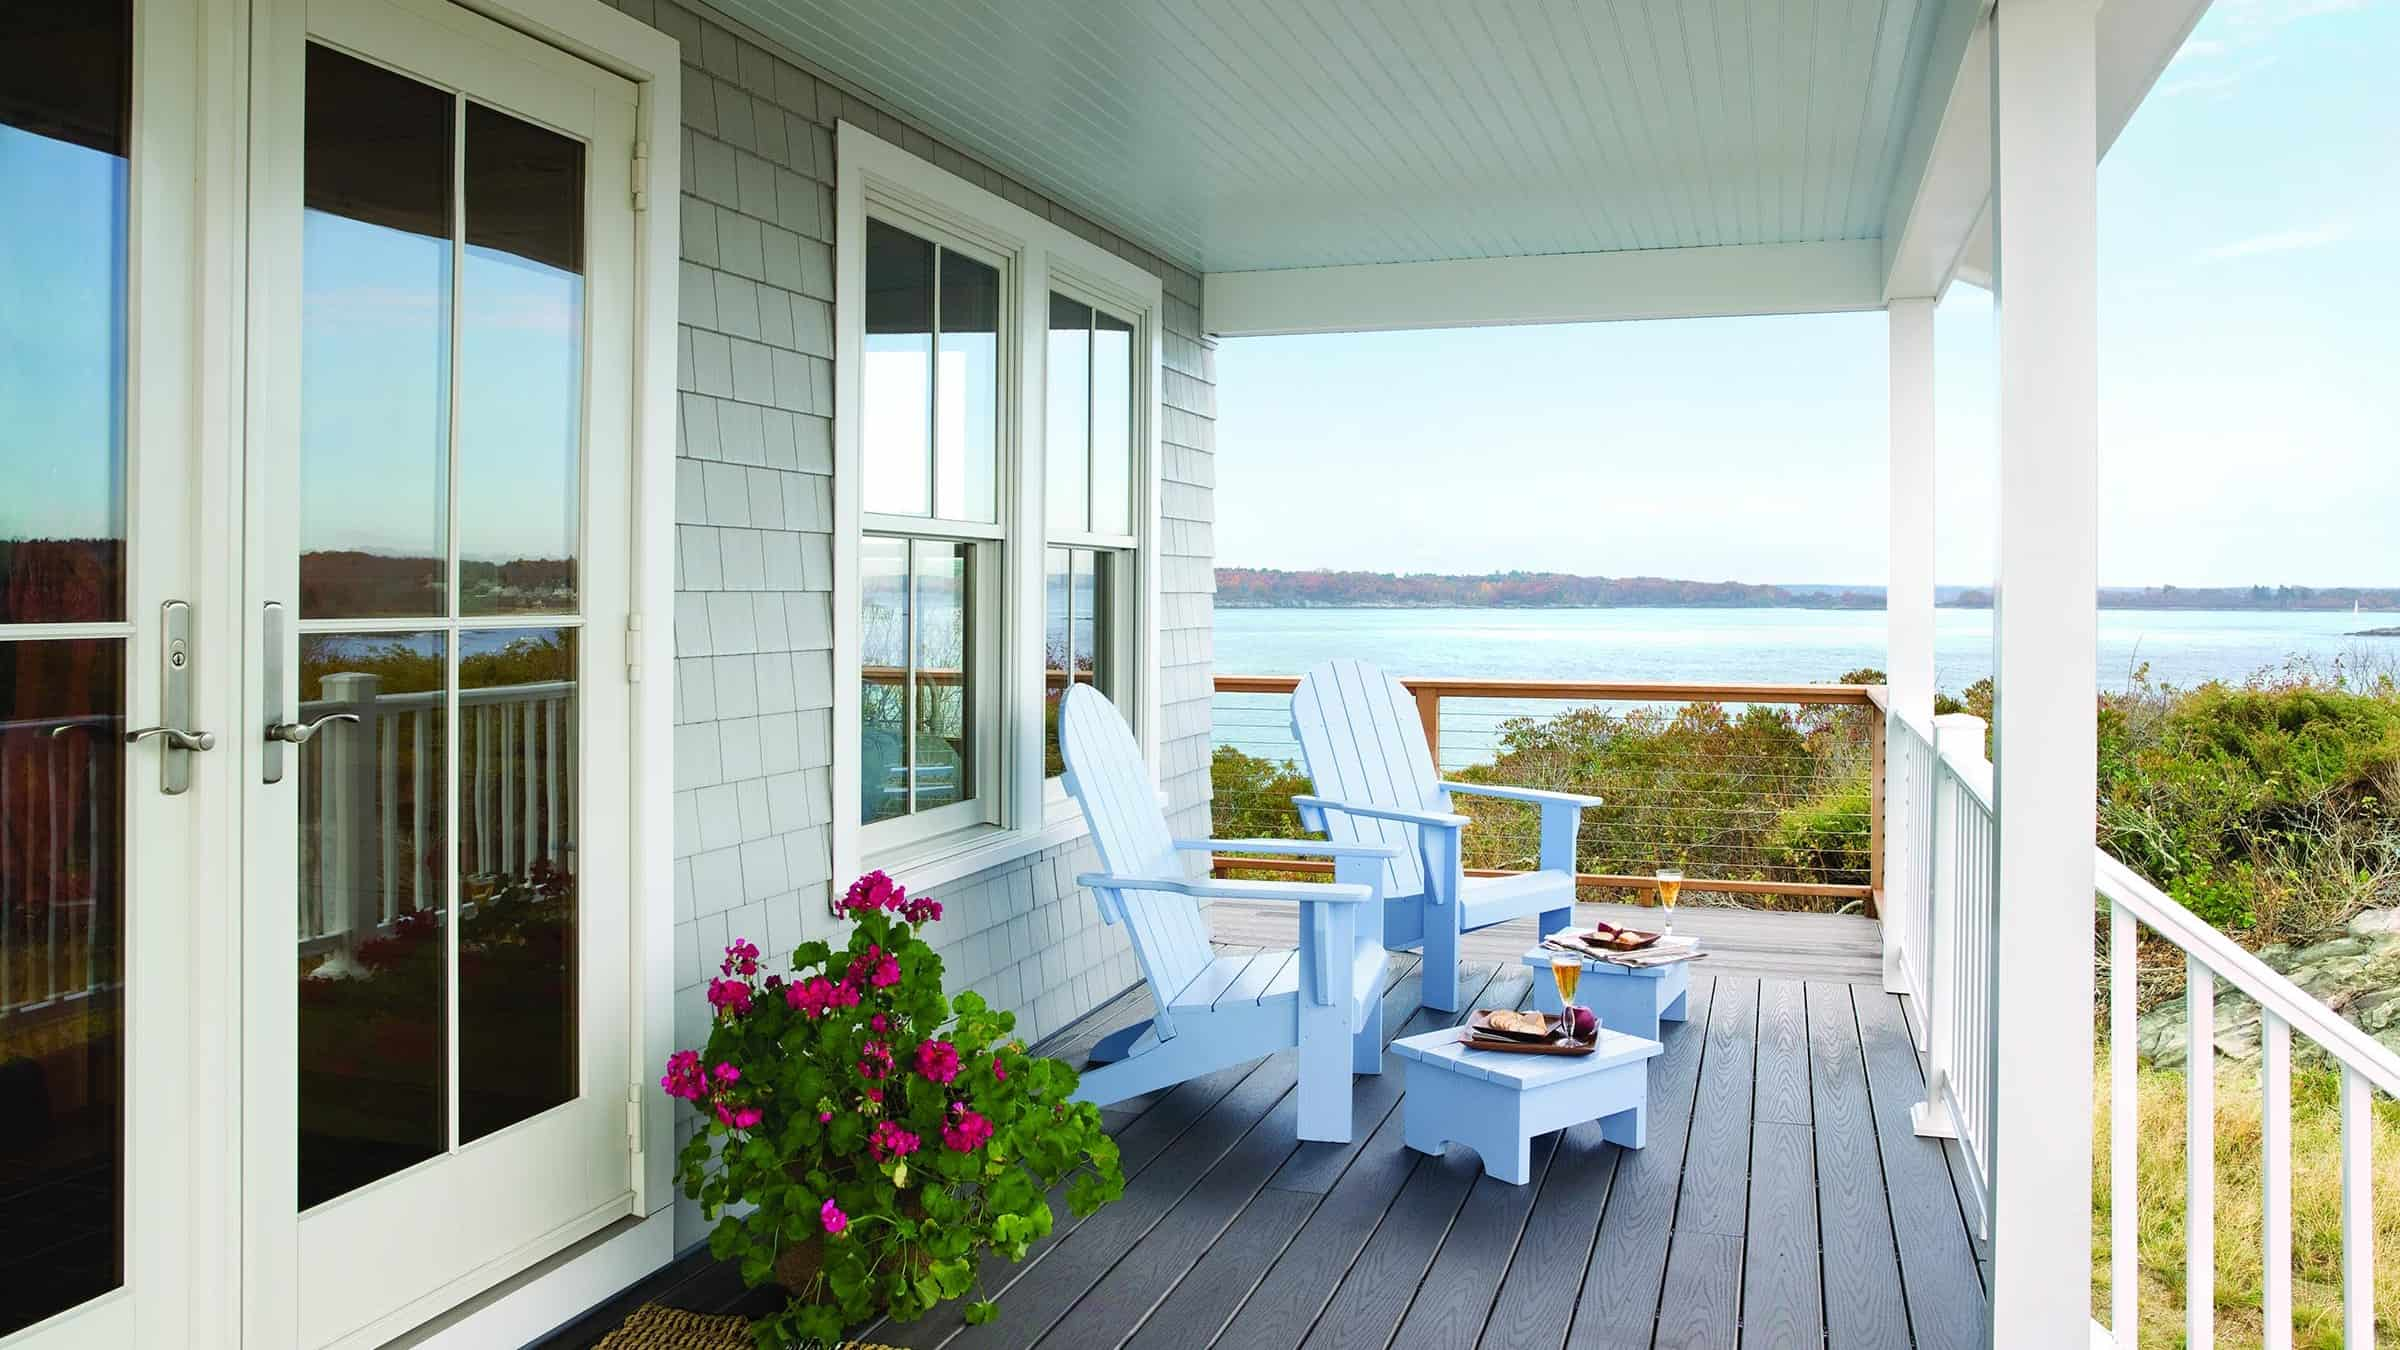 andersen windows with a lake view